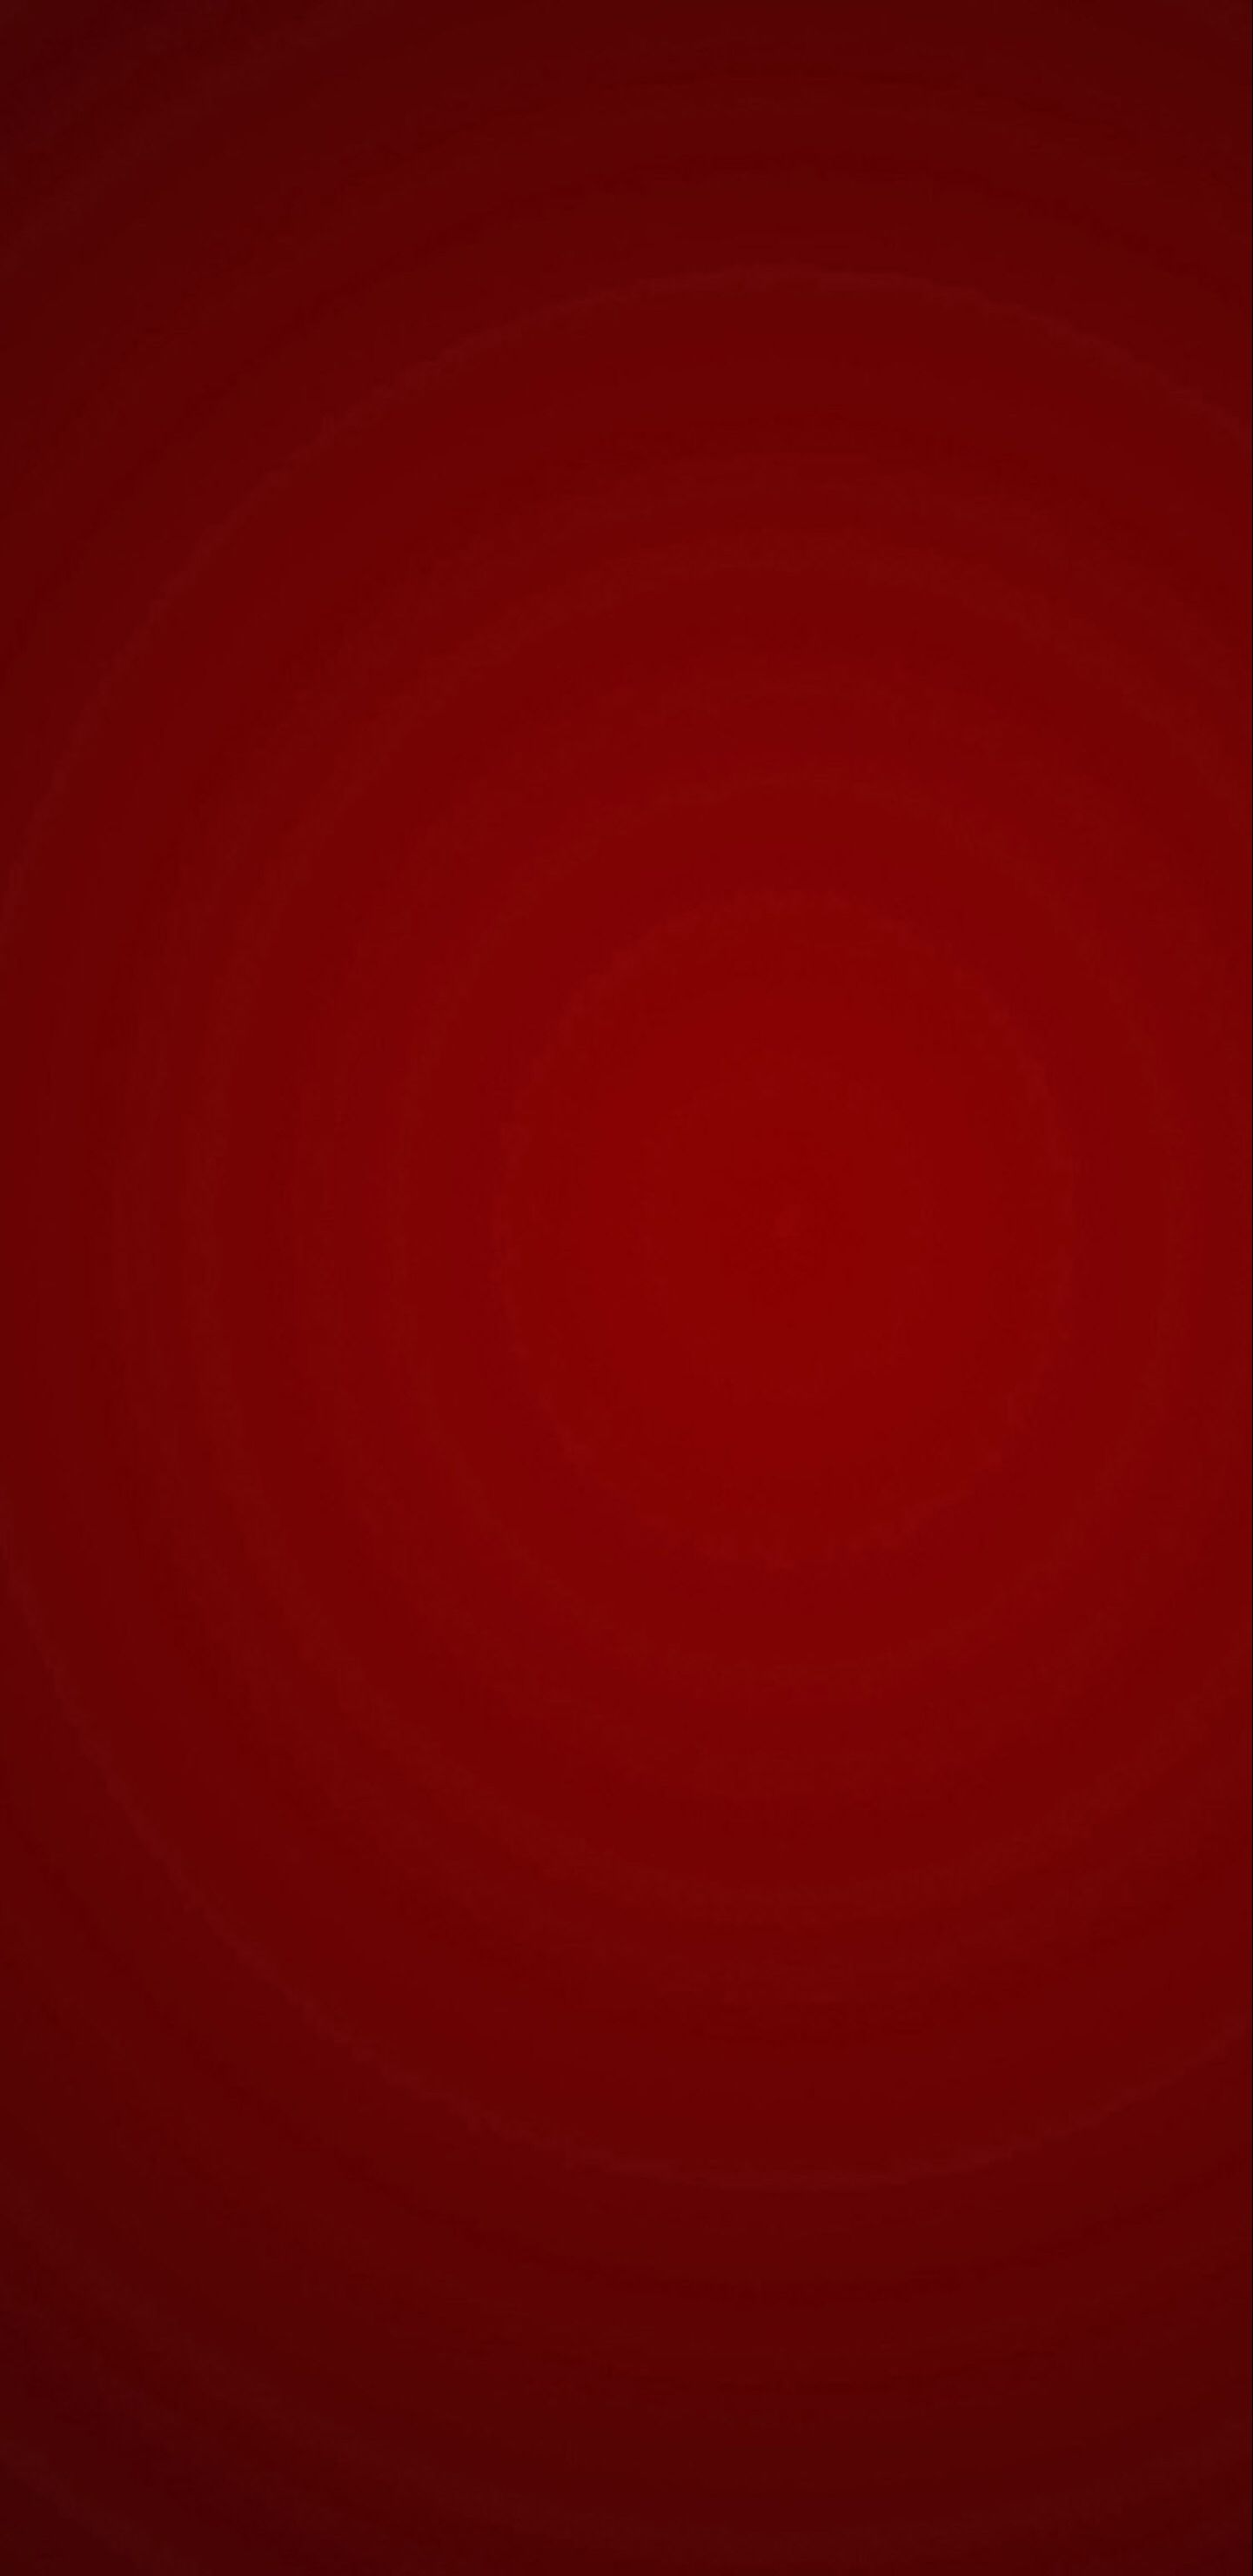 Hd wallpaper galaxy s8 - Red Clean Background Colour Wallpaper Galaxy S8 Walls